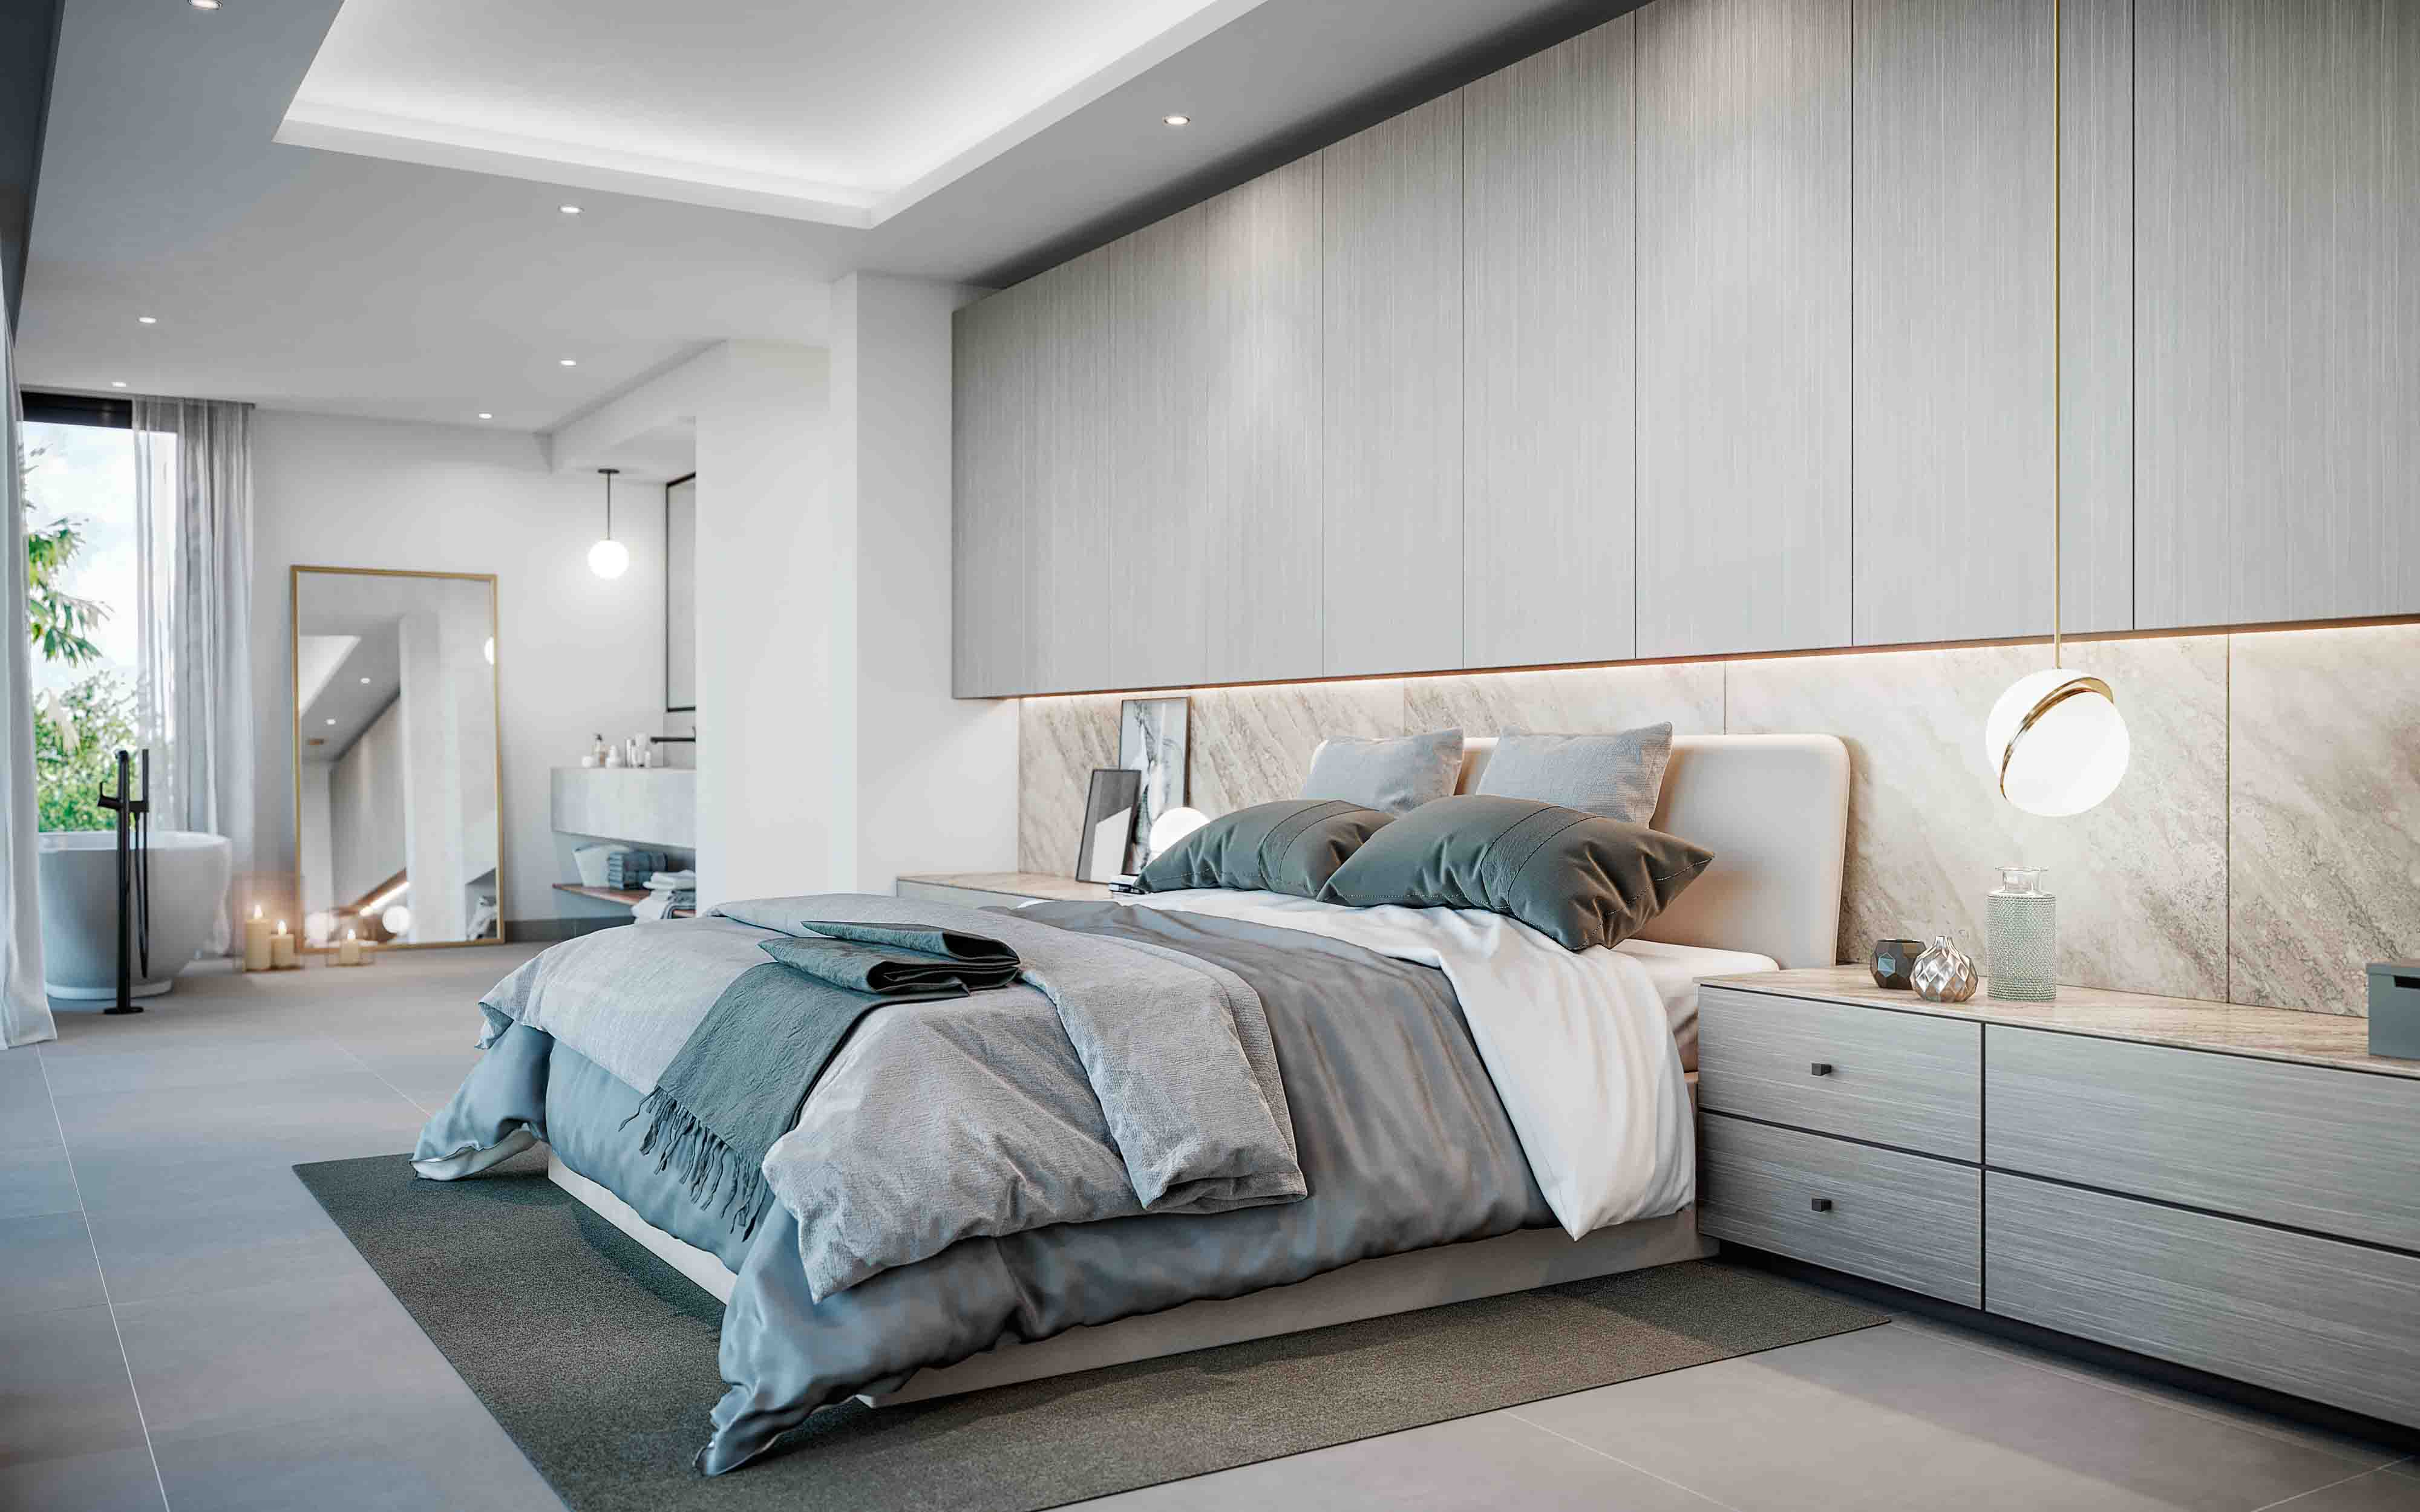 Bedroom suite modern villa example